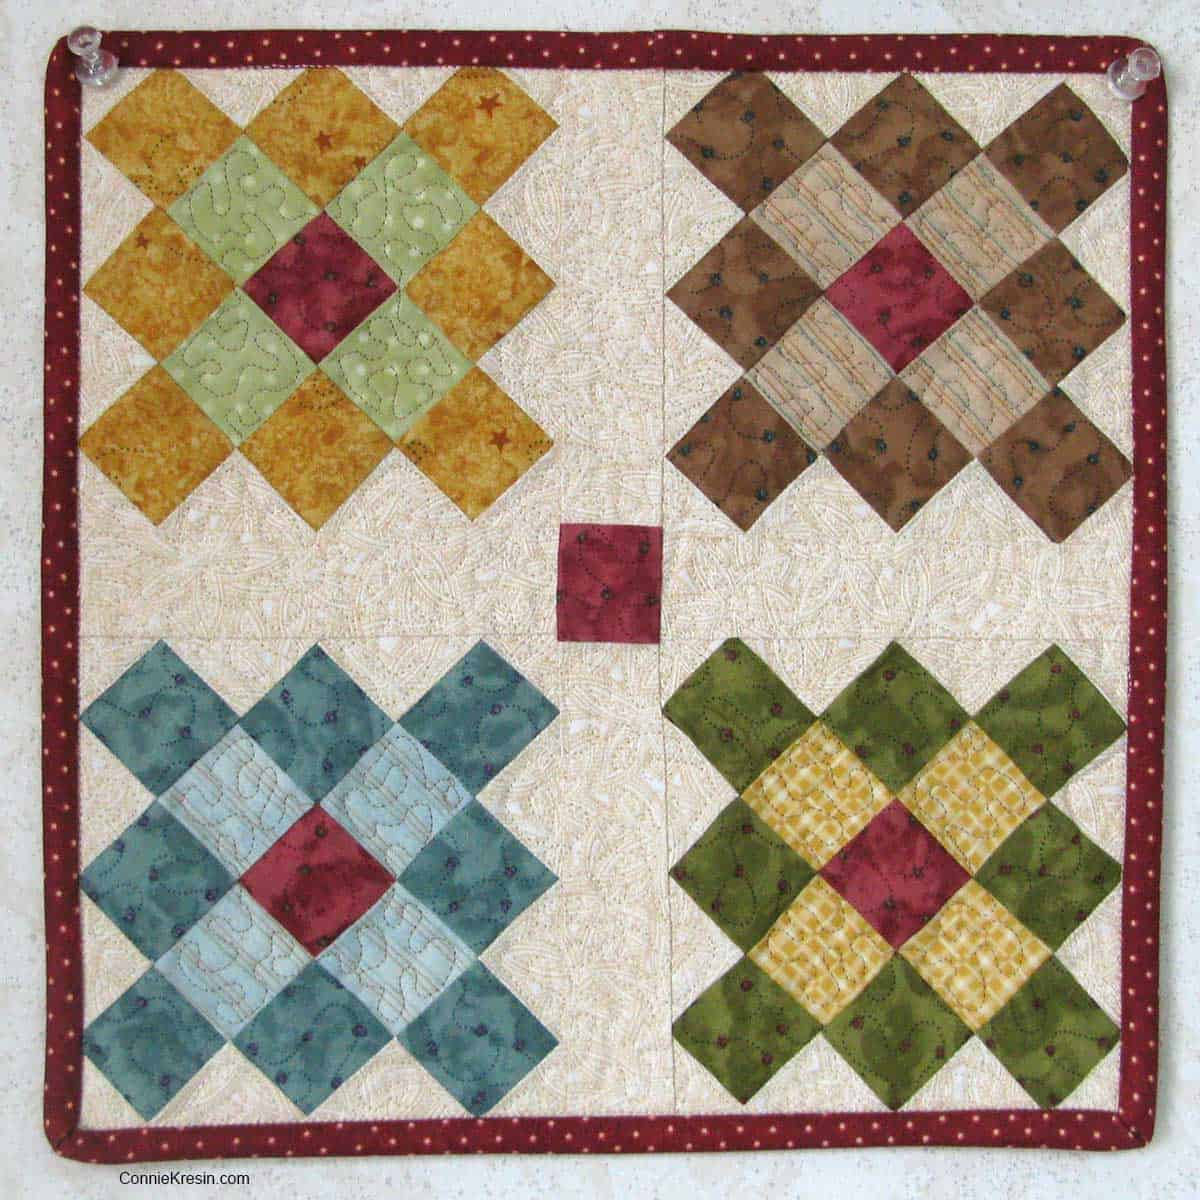 Mini Granny Square quilt